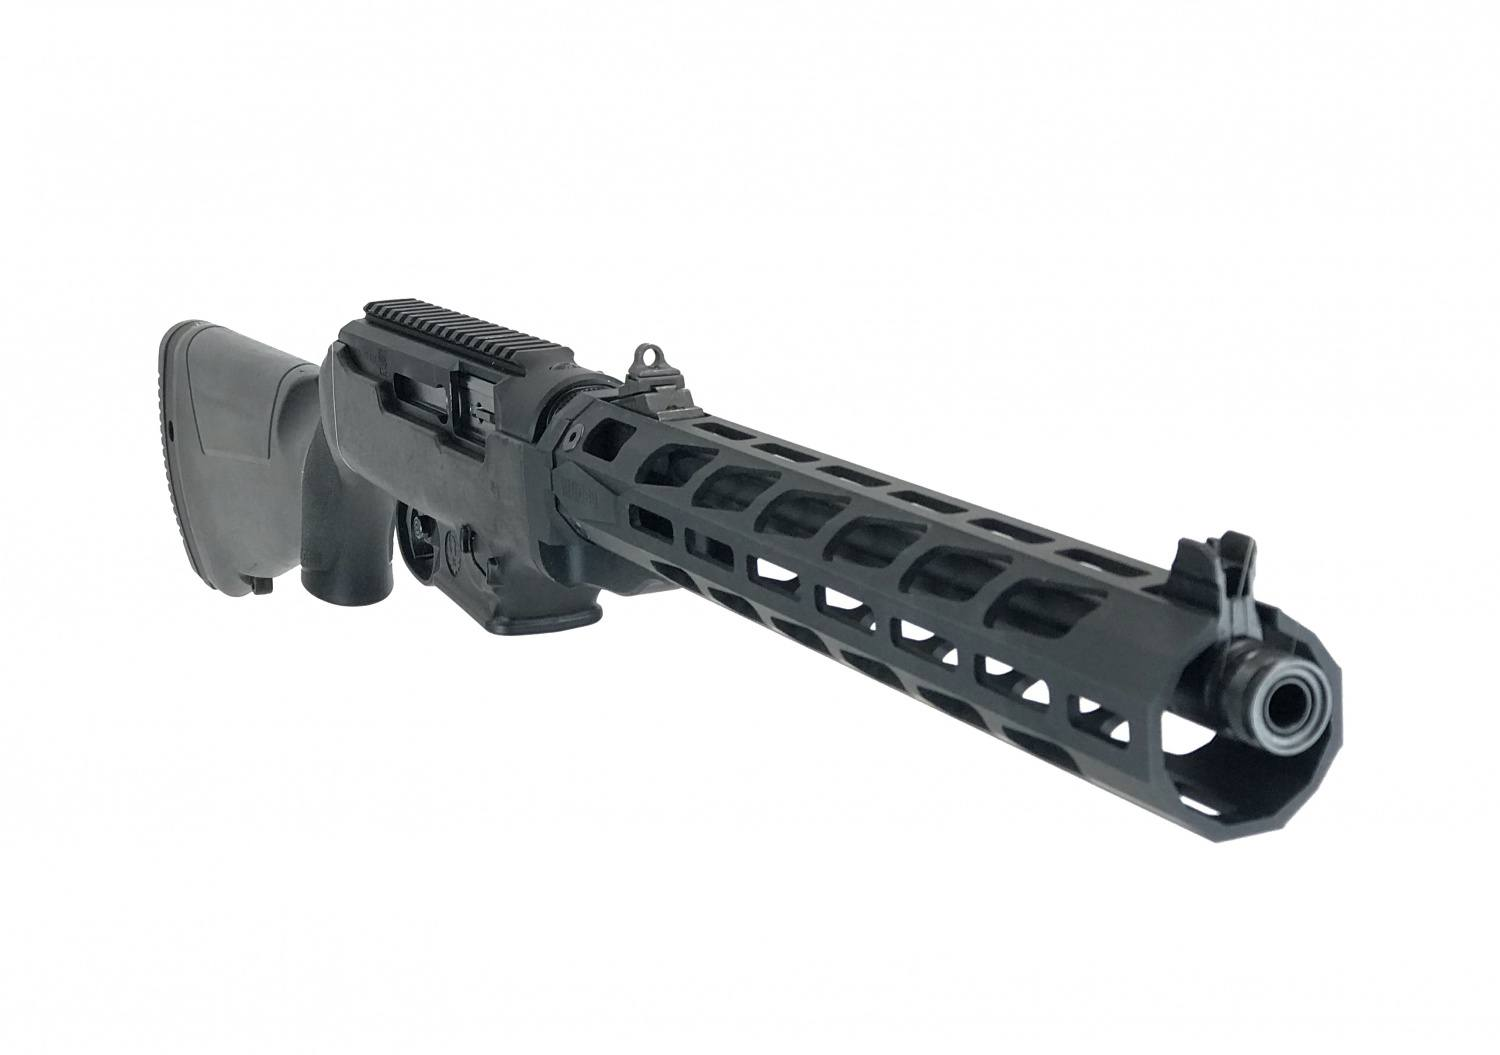 3/4 view of the free floant handguard PC Carbine